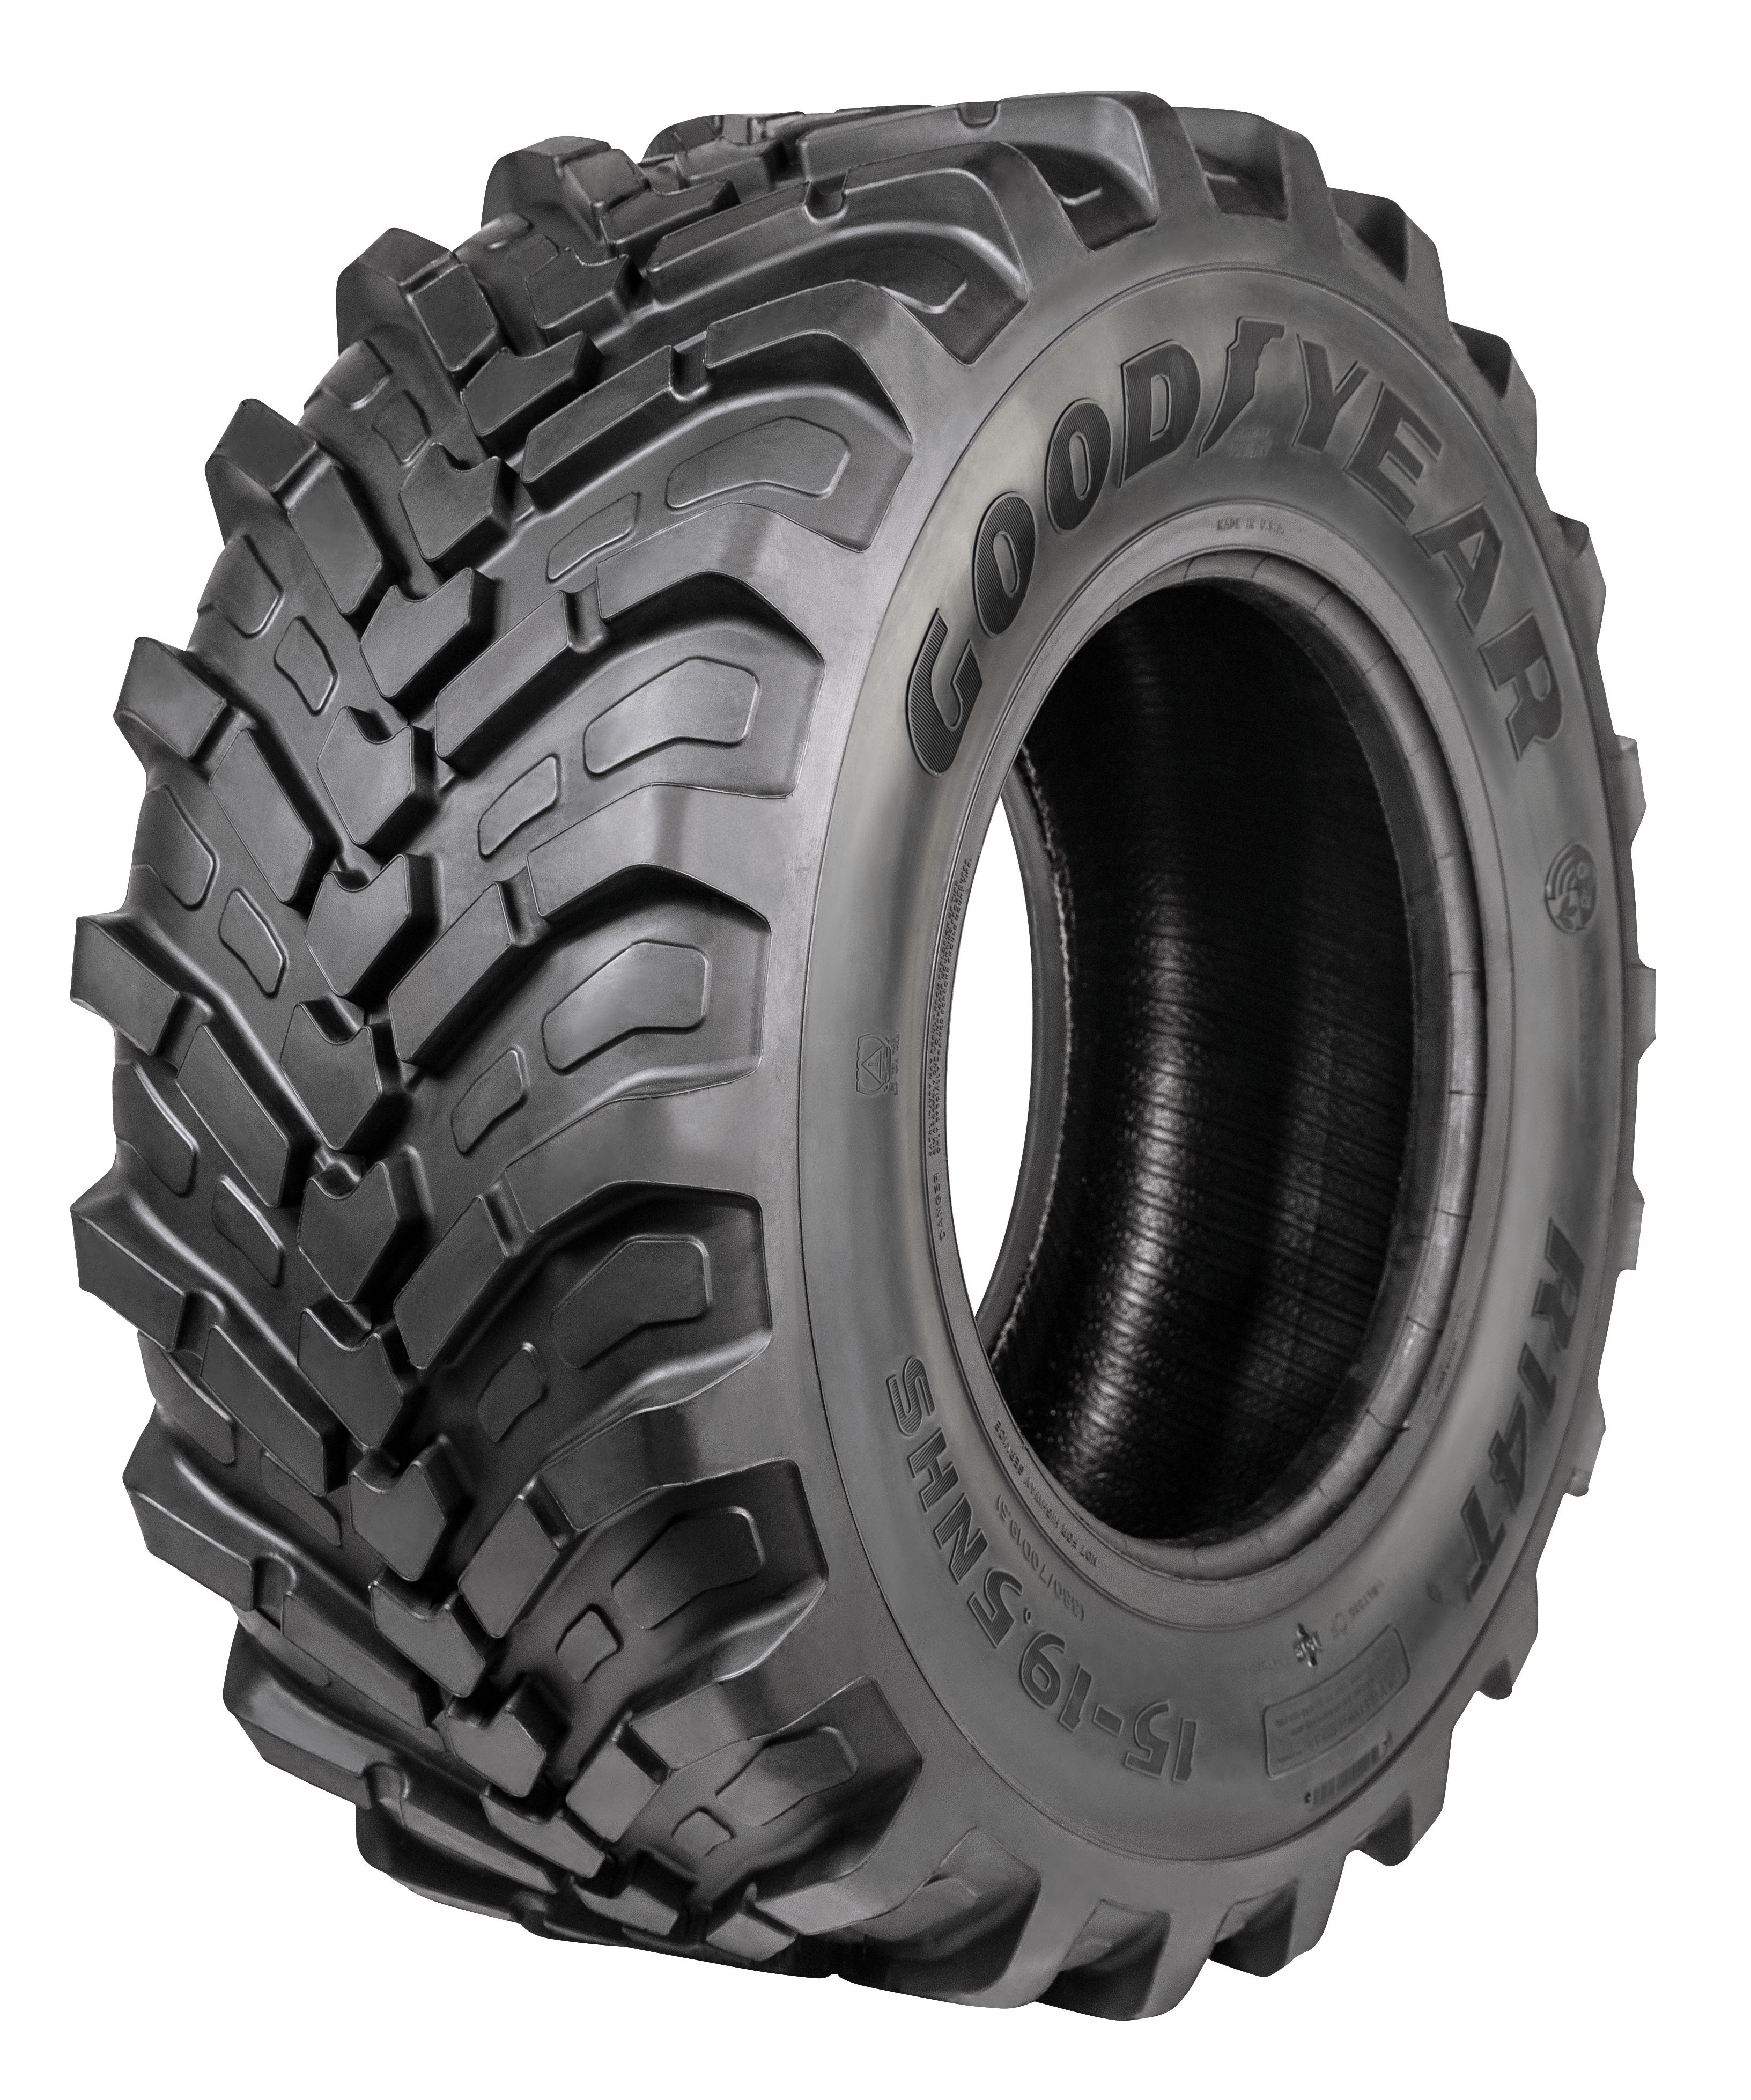 Goodyear R14 Bias Crossover Tire